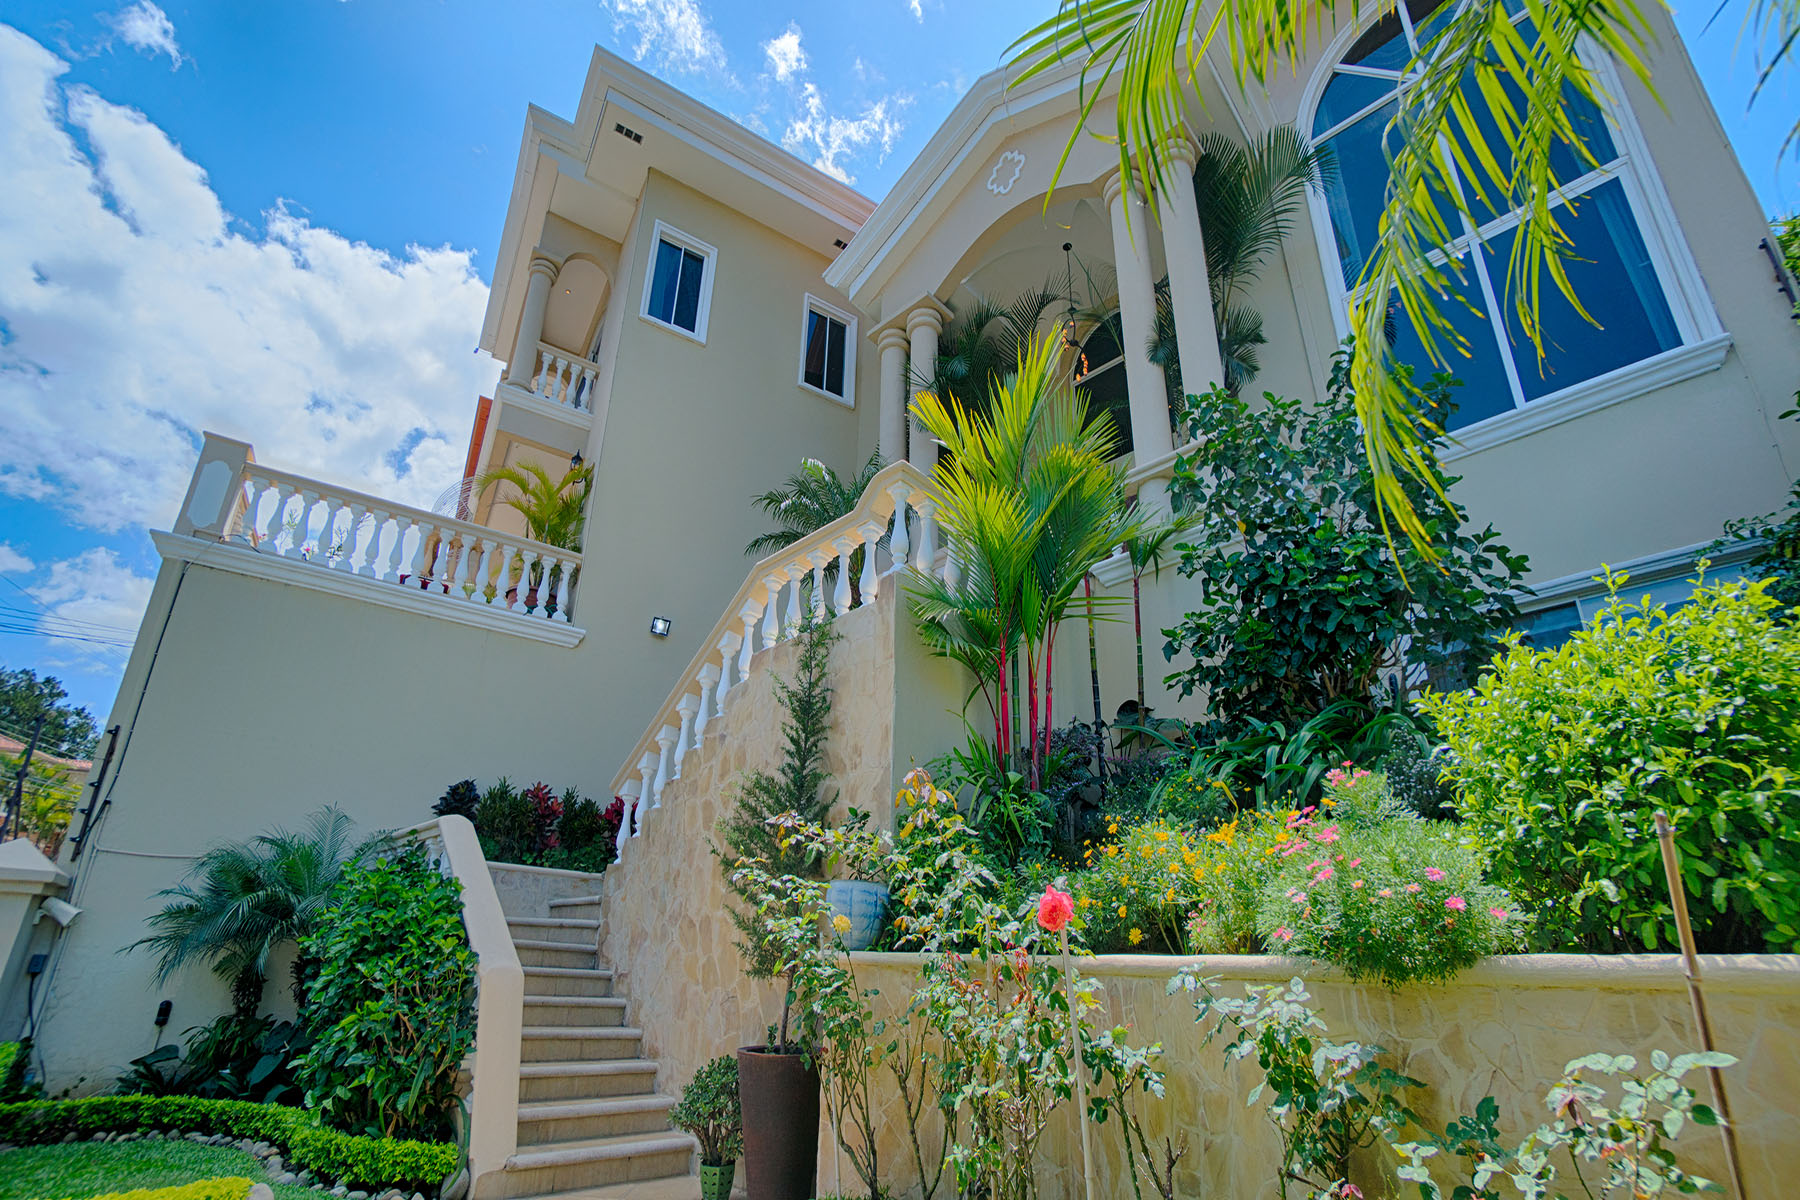 Additional photo for property listing at Ciudad Cariari de Belén Belen, Heredia Costa Rica